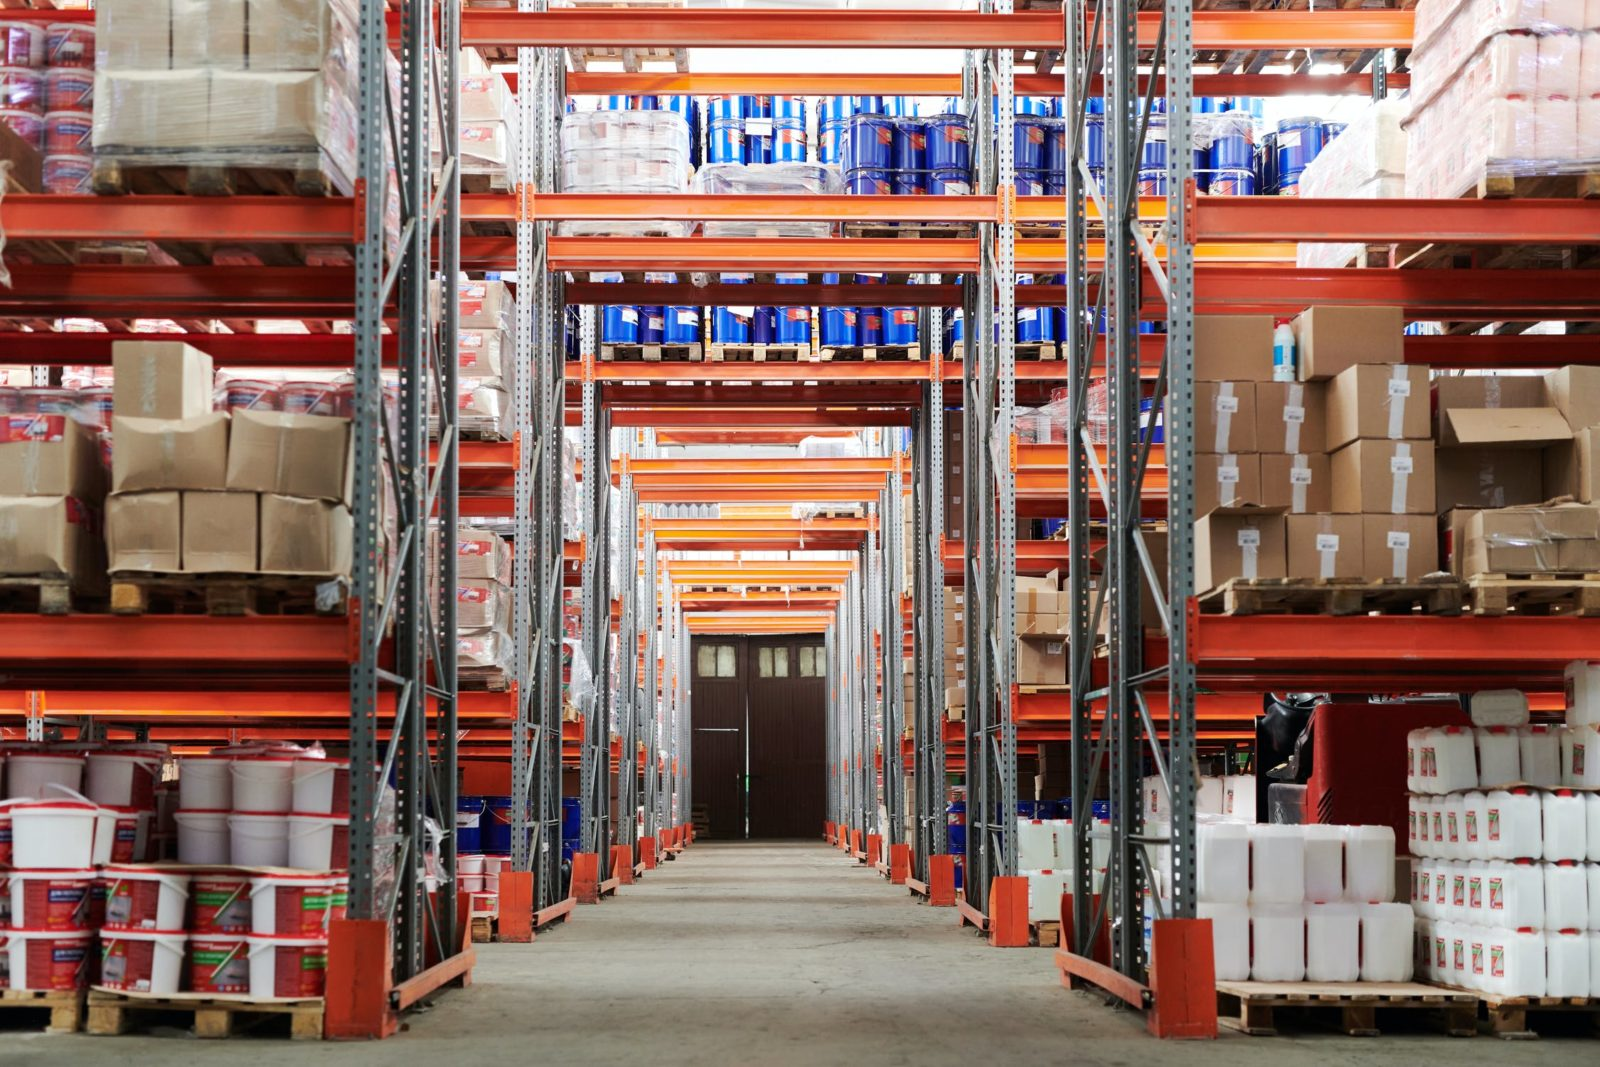 A stocked warehouse